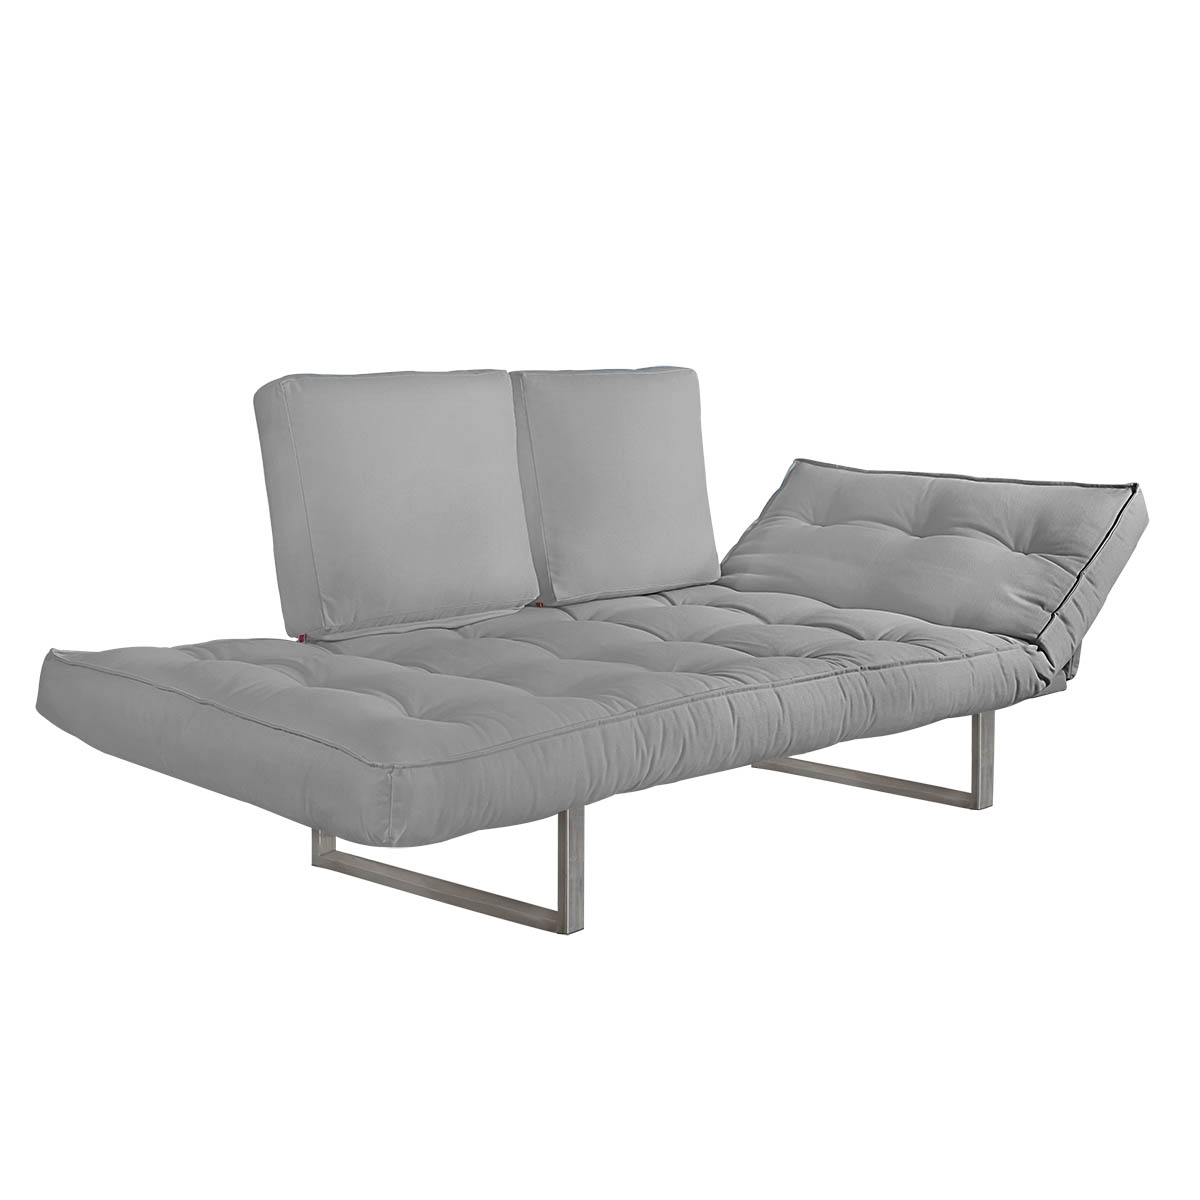 Sofa cama solteiro futon company for Sofa cama de pared